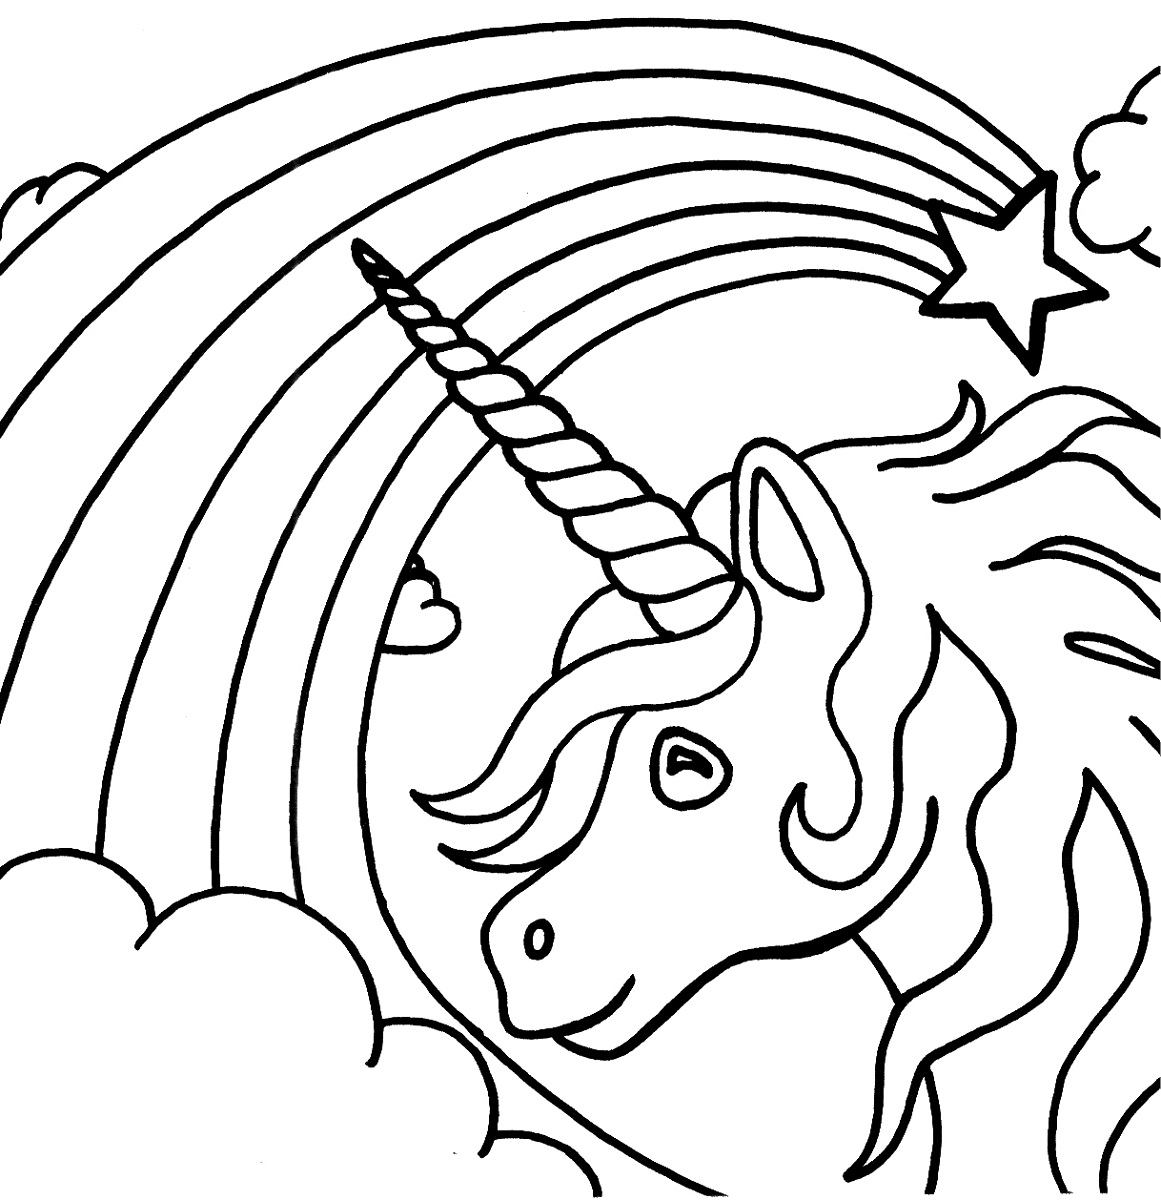 coloring sheet unicorn coloring pictures to print rainbow unicorn unicorn coloring pages unicorn coloring to print coloring sheet coloring pictures unicorn